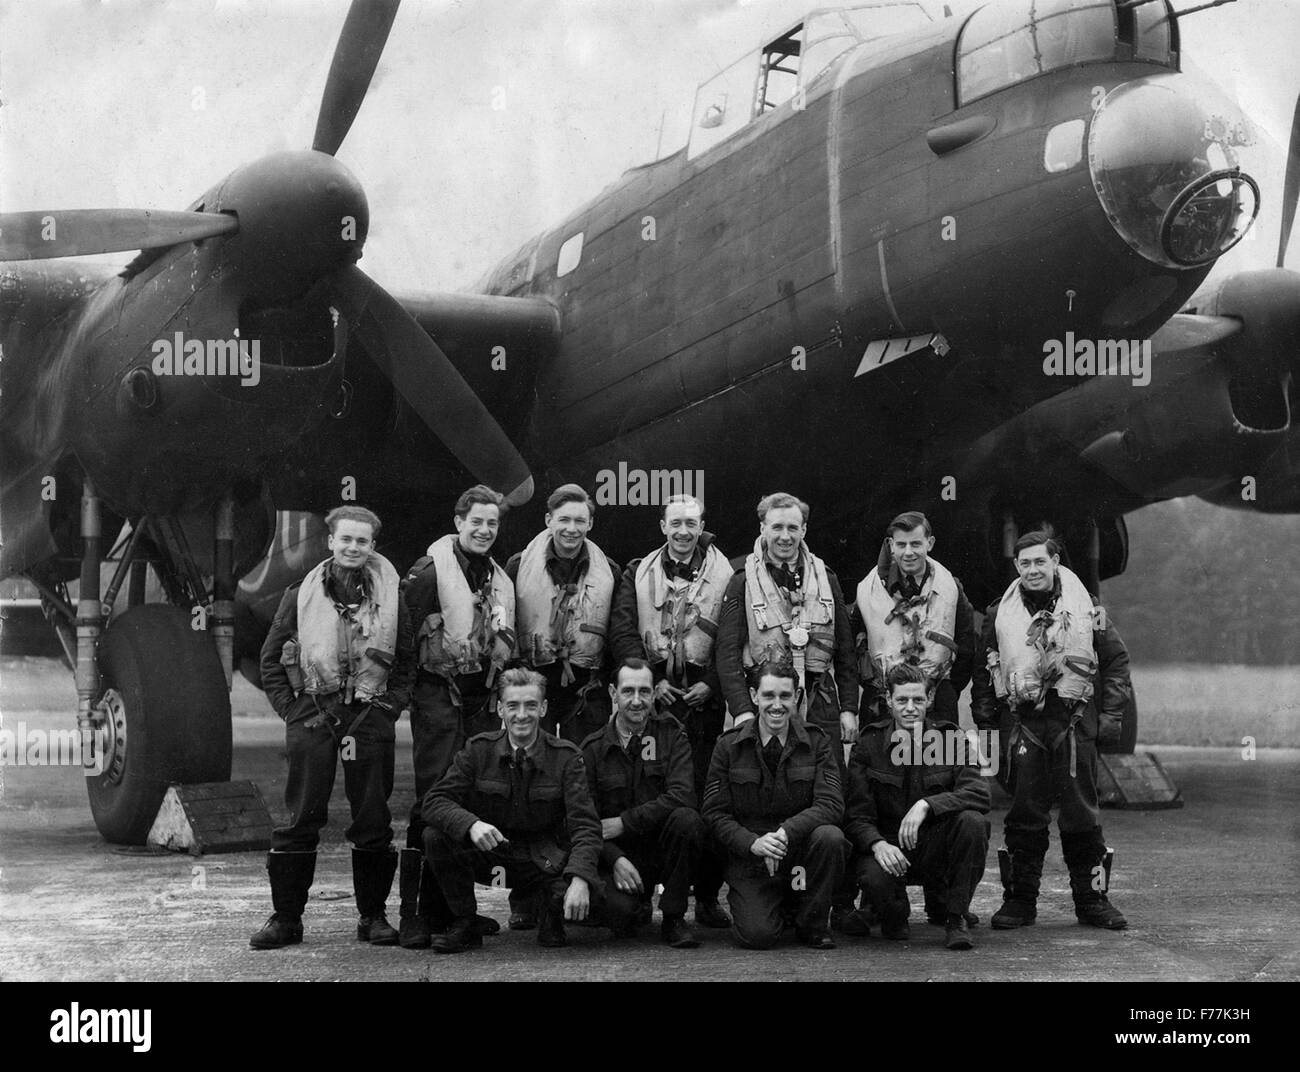 World War 2 RAF bomber crew of 138 squadron bomber command with Lancaster at Tuddenham in 1945 - Stock Image